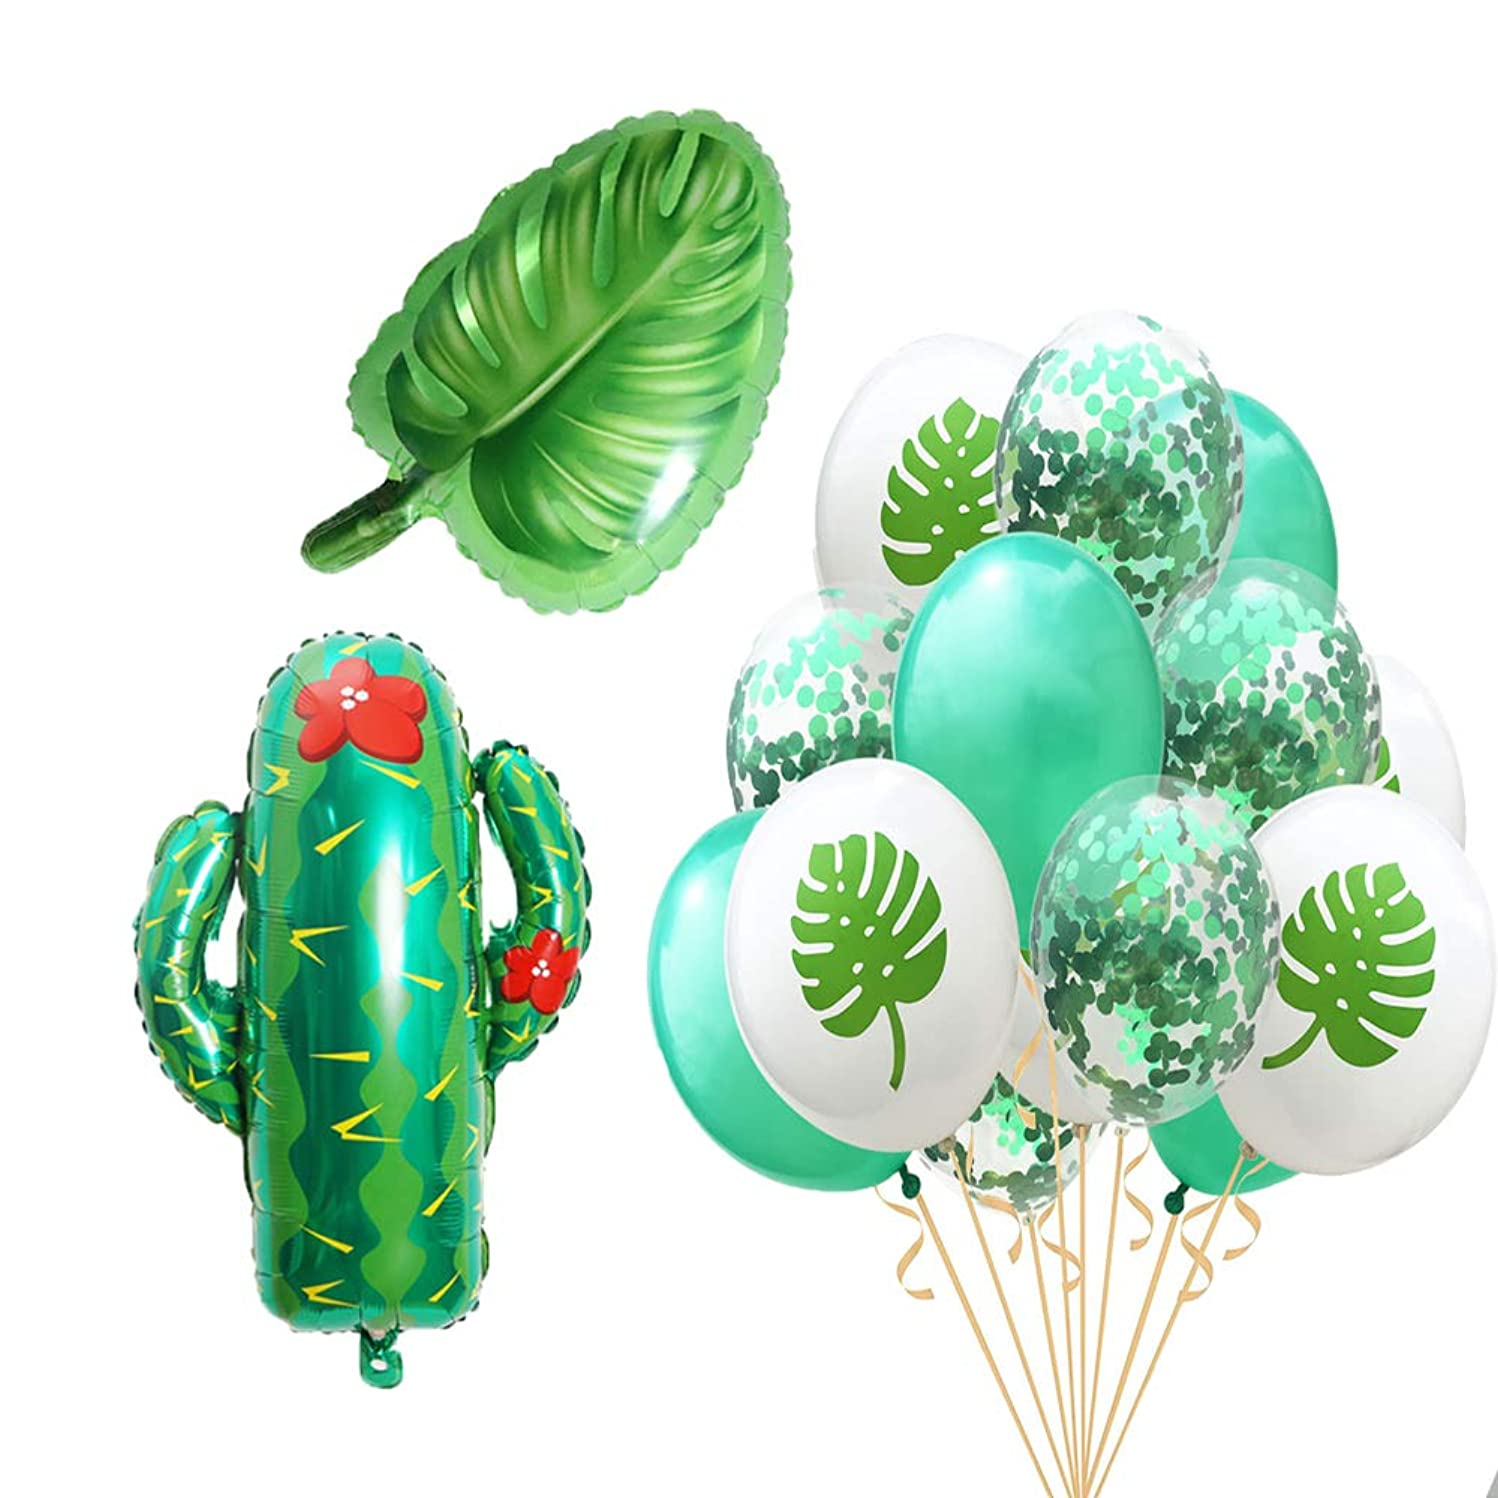 Beach Summer Tropical Party Theme Cactus Balloons Hawaii Party Decorative Leaves Mylar Balloon Colorful Confetti Balloons for Luau Party Decor Hawaiian Decorations Party Supplies